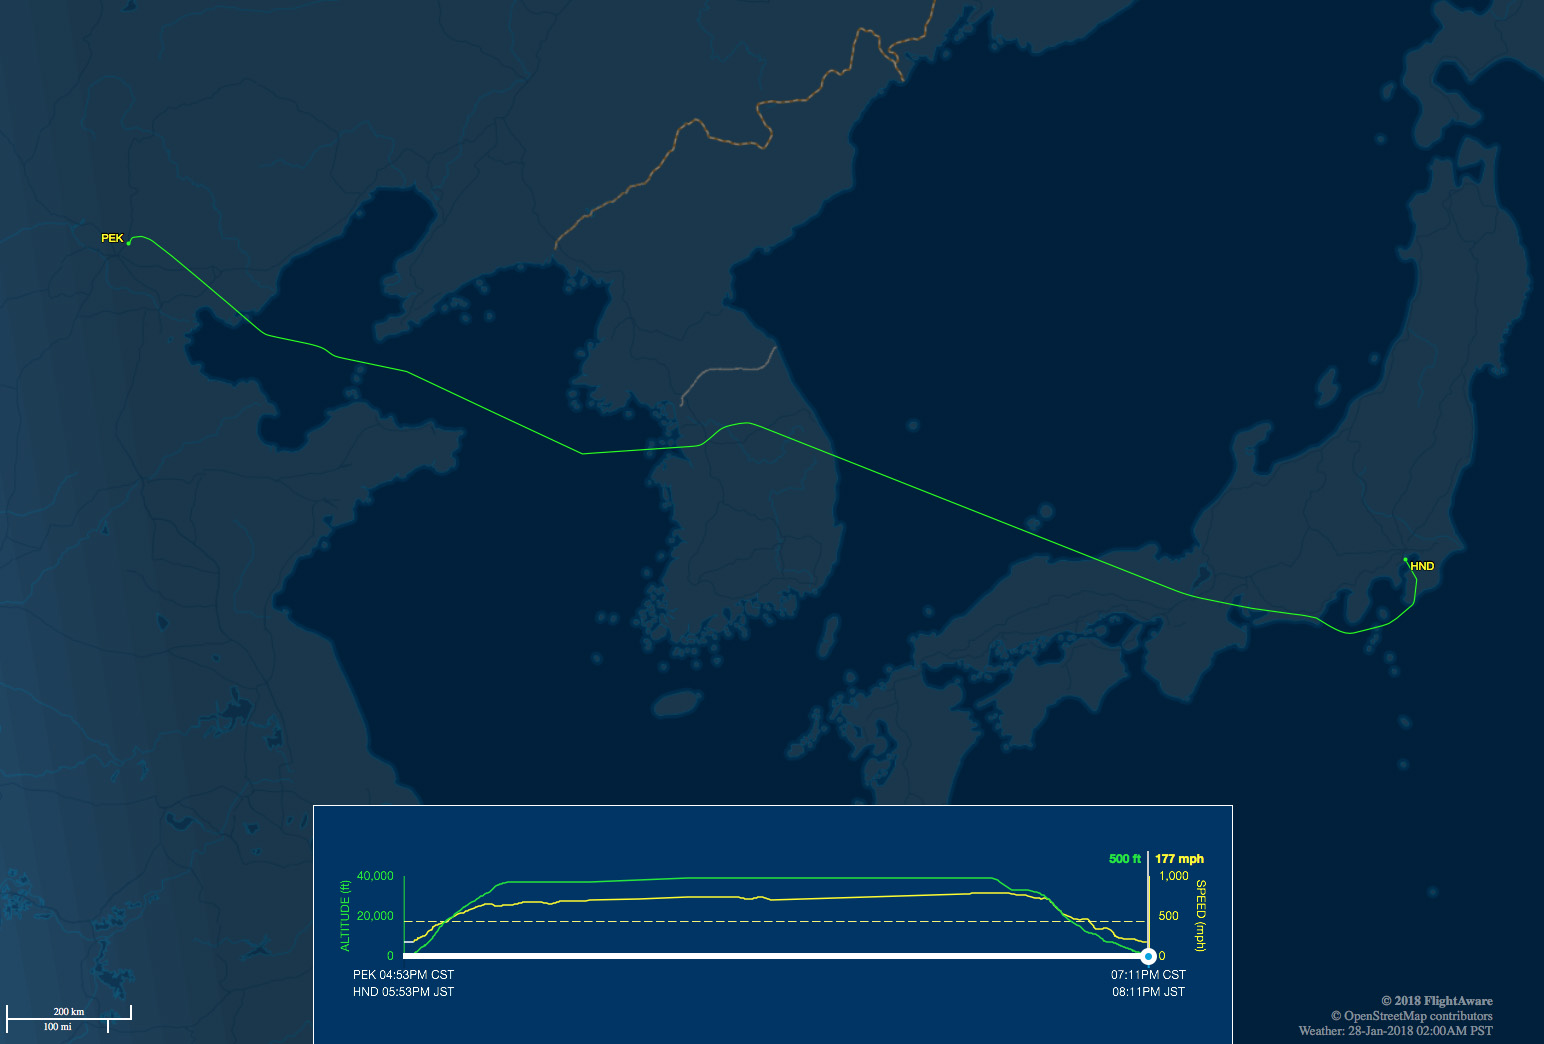 PEK-HND route map